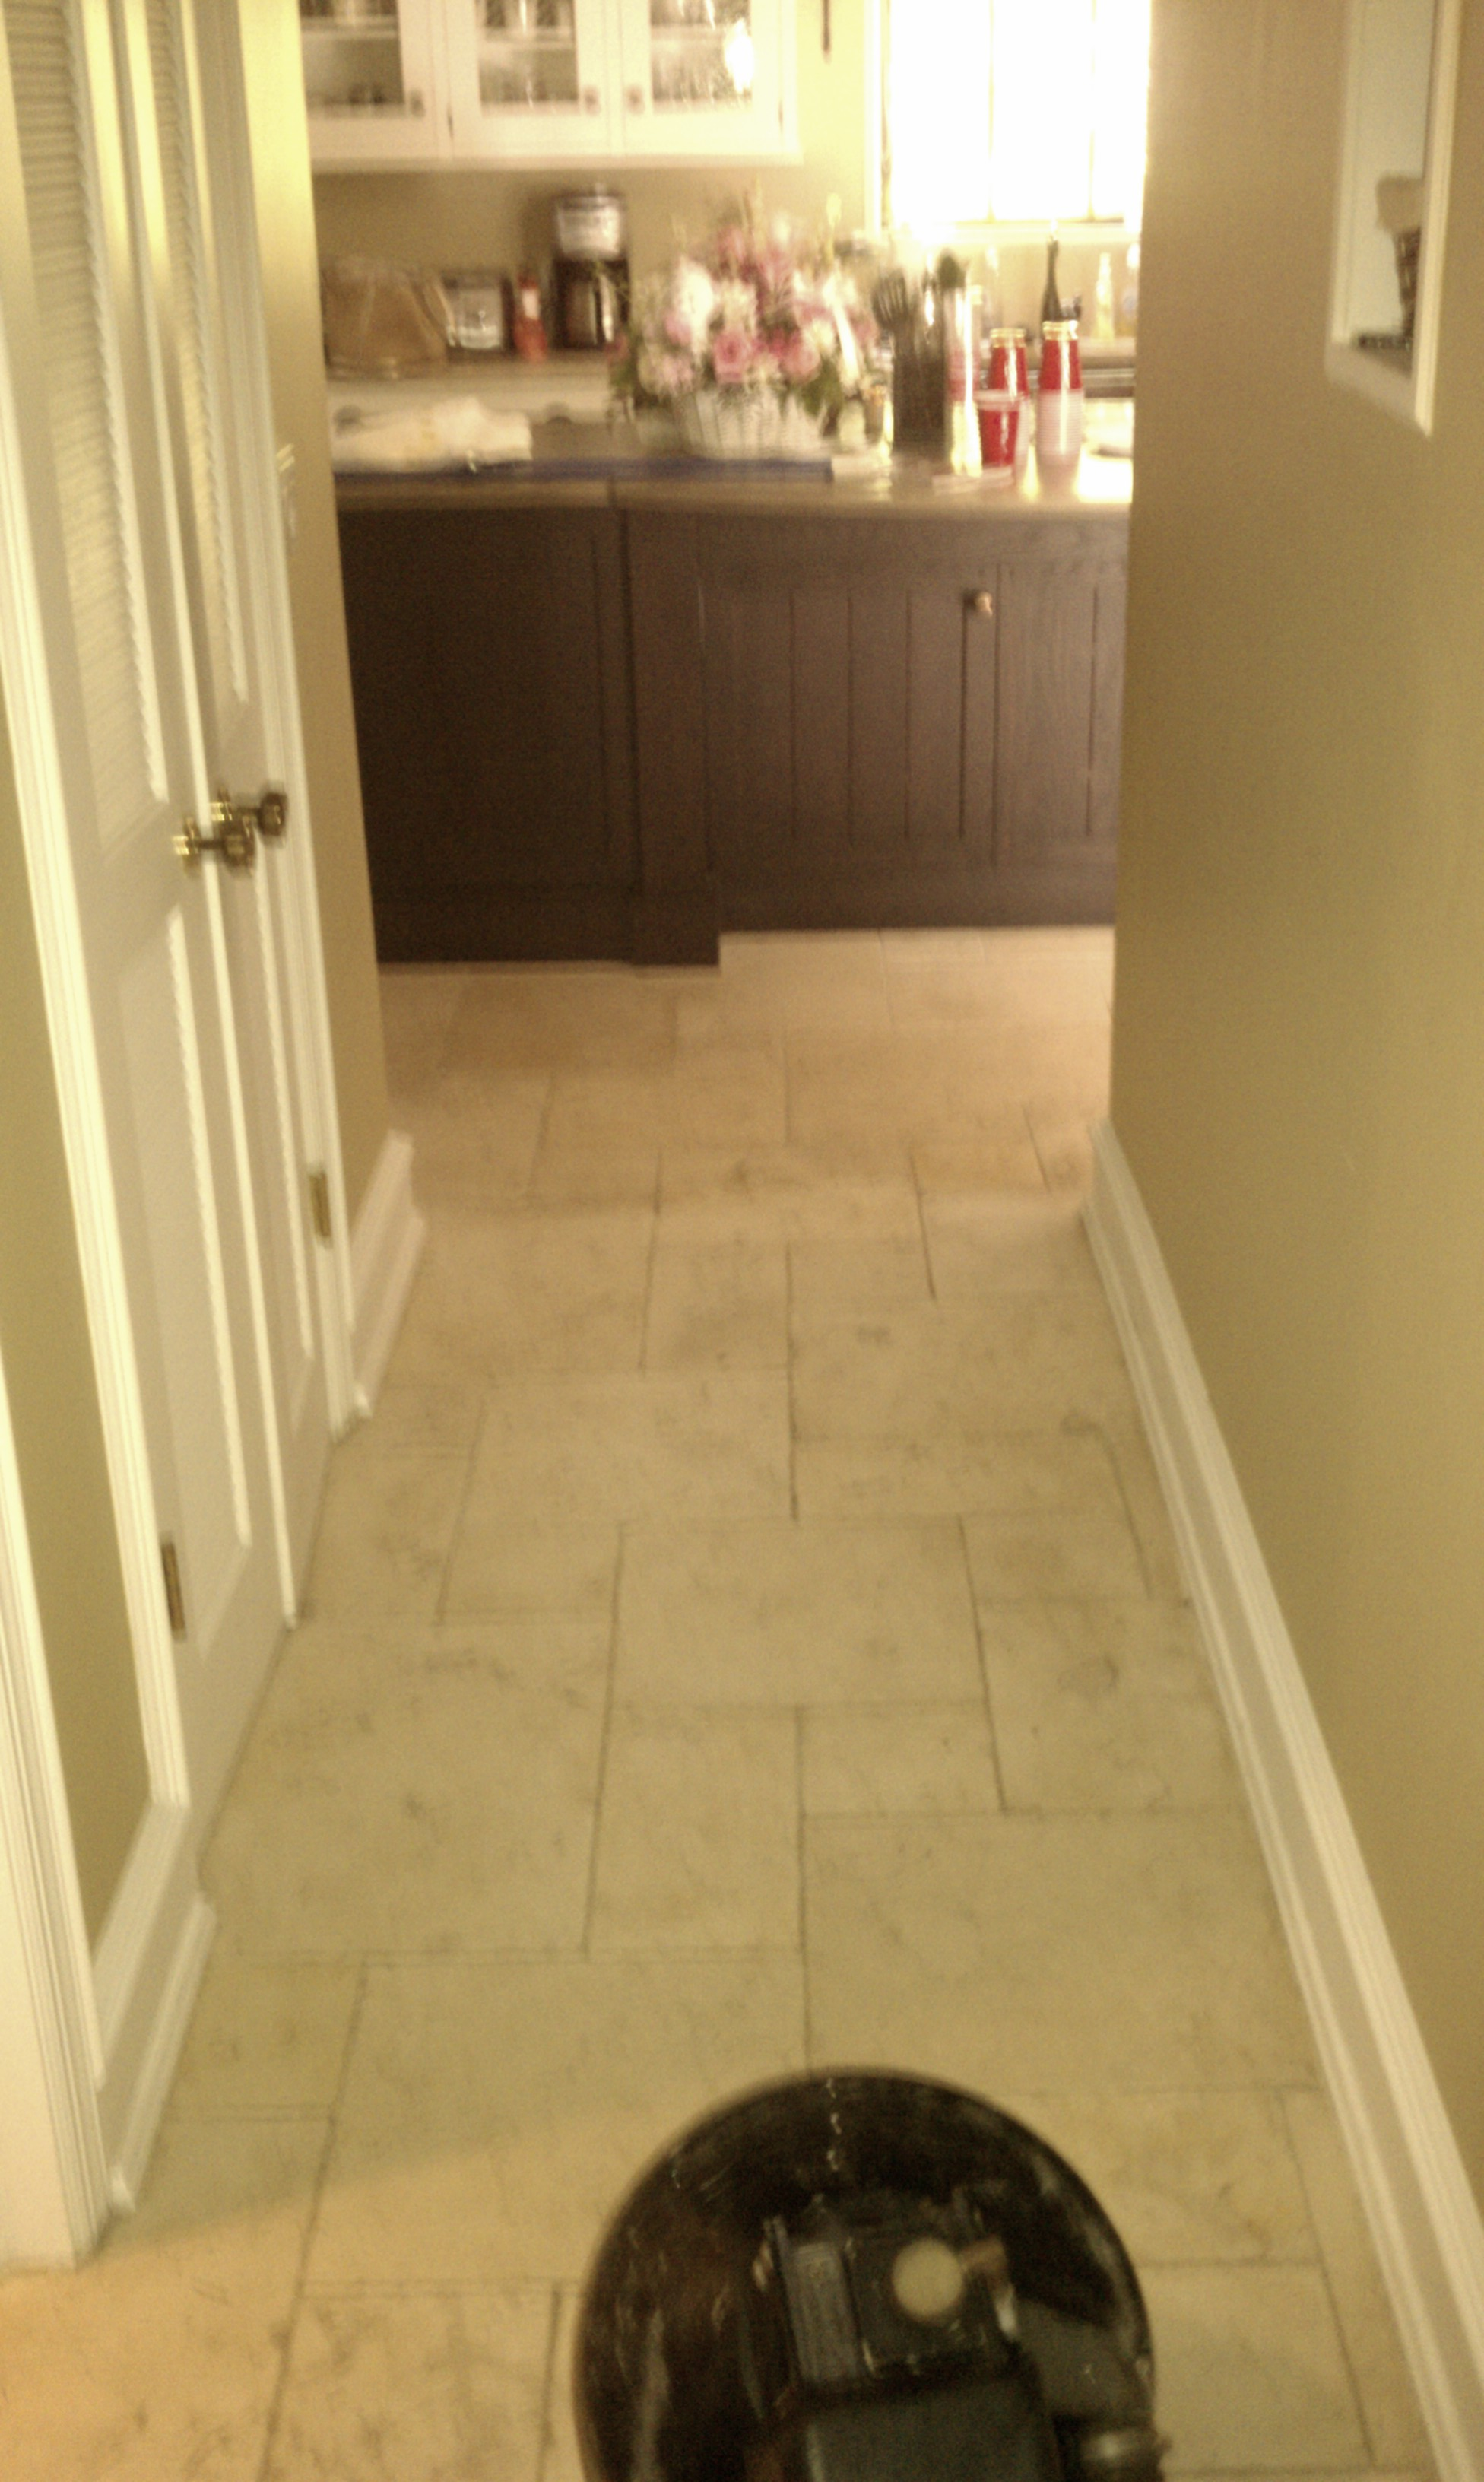 TRAVERTINE TILE CLEANING - DURING